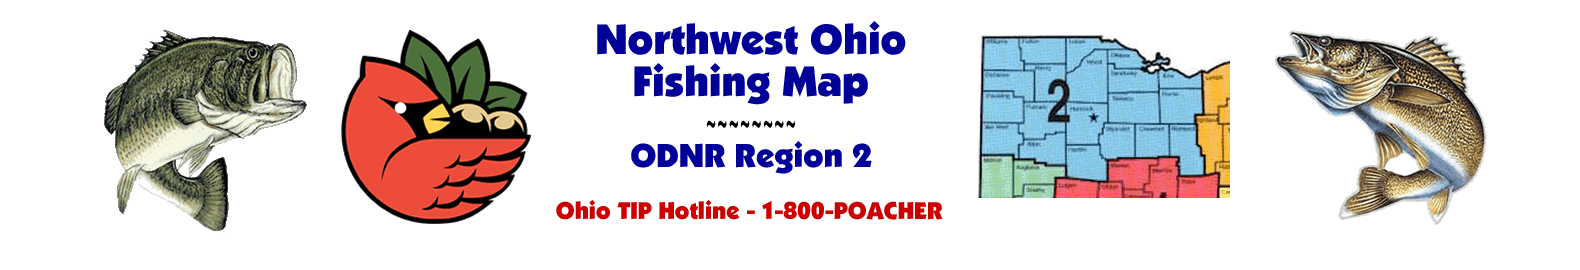 Northwest Ohio Fishing Maps - ODNR Region Two